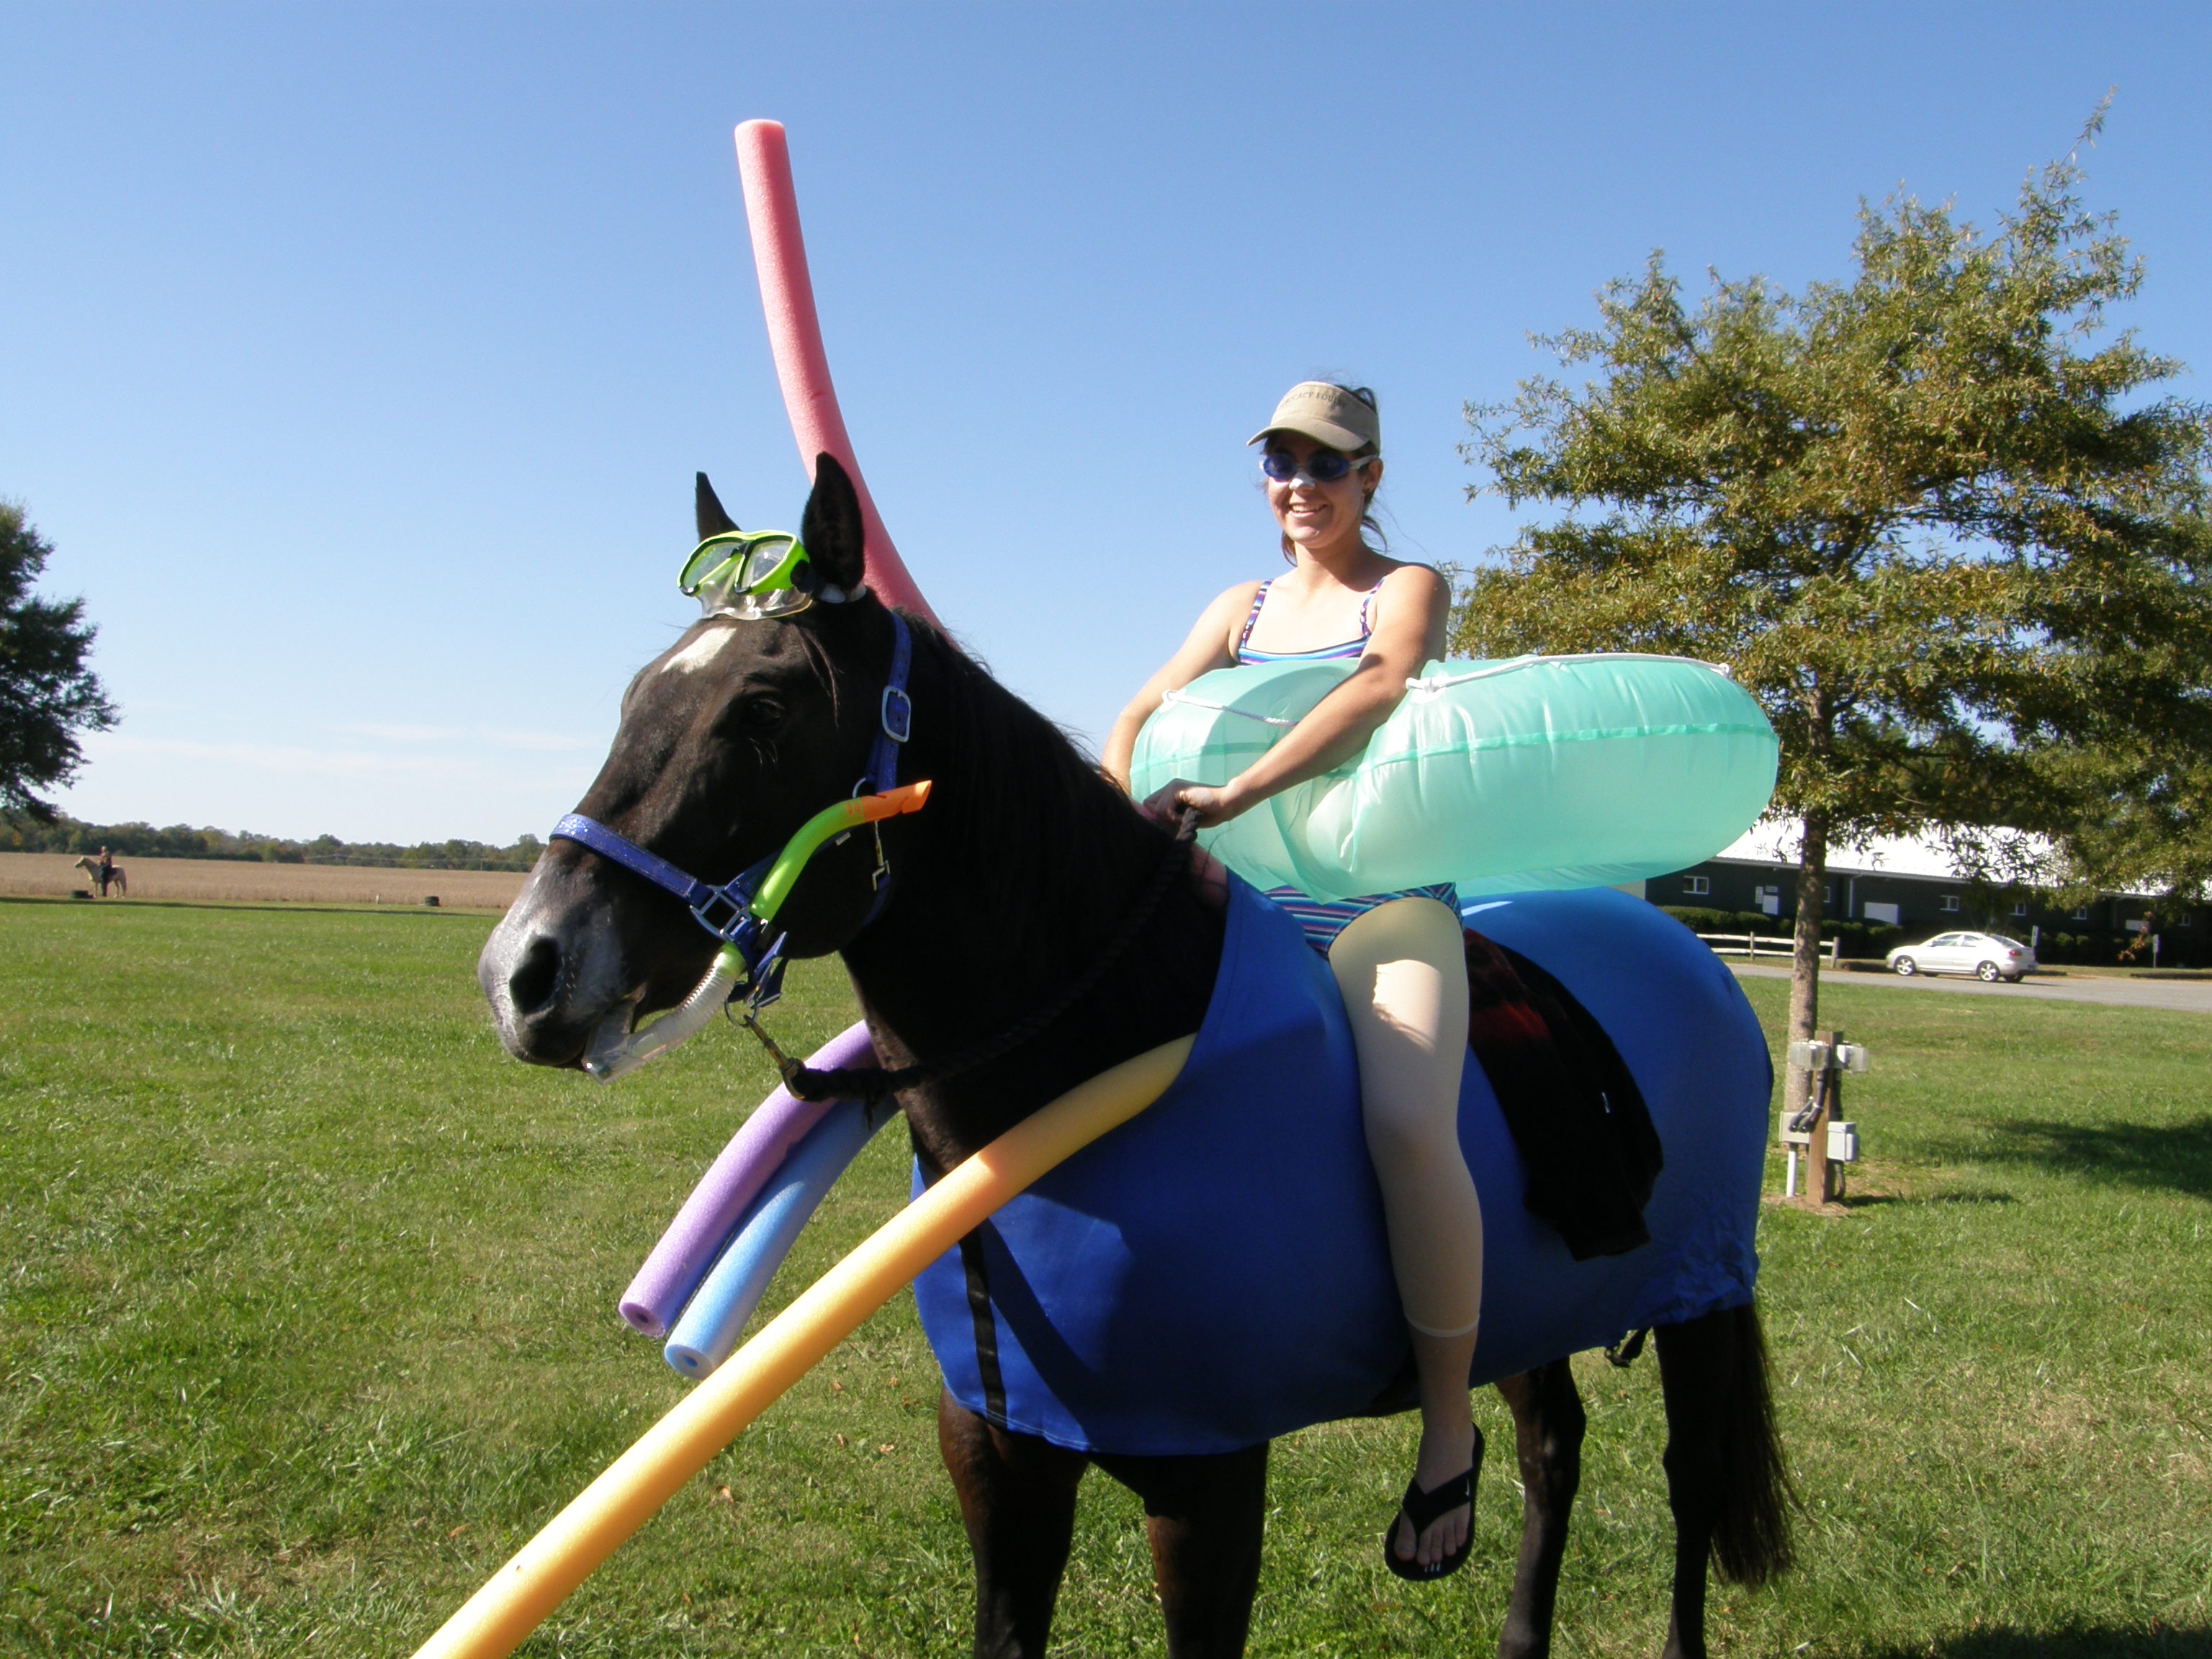 We would love to see you and your horse's halloween costume!